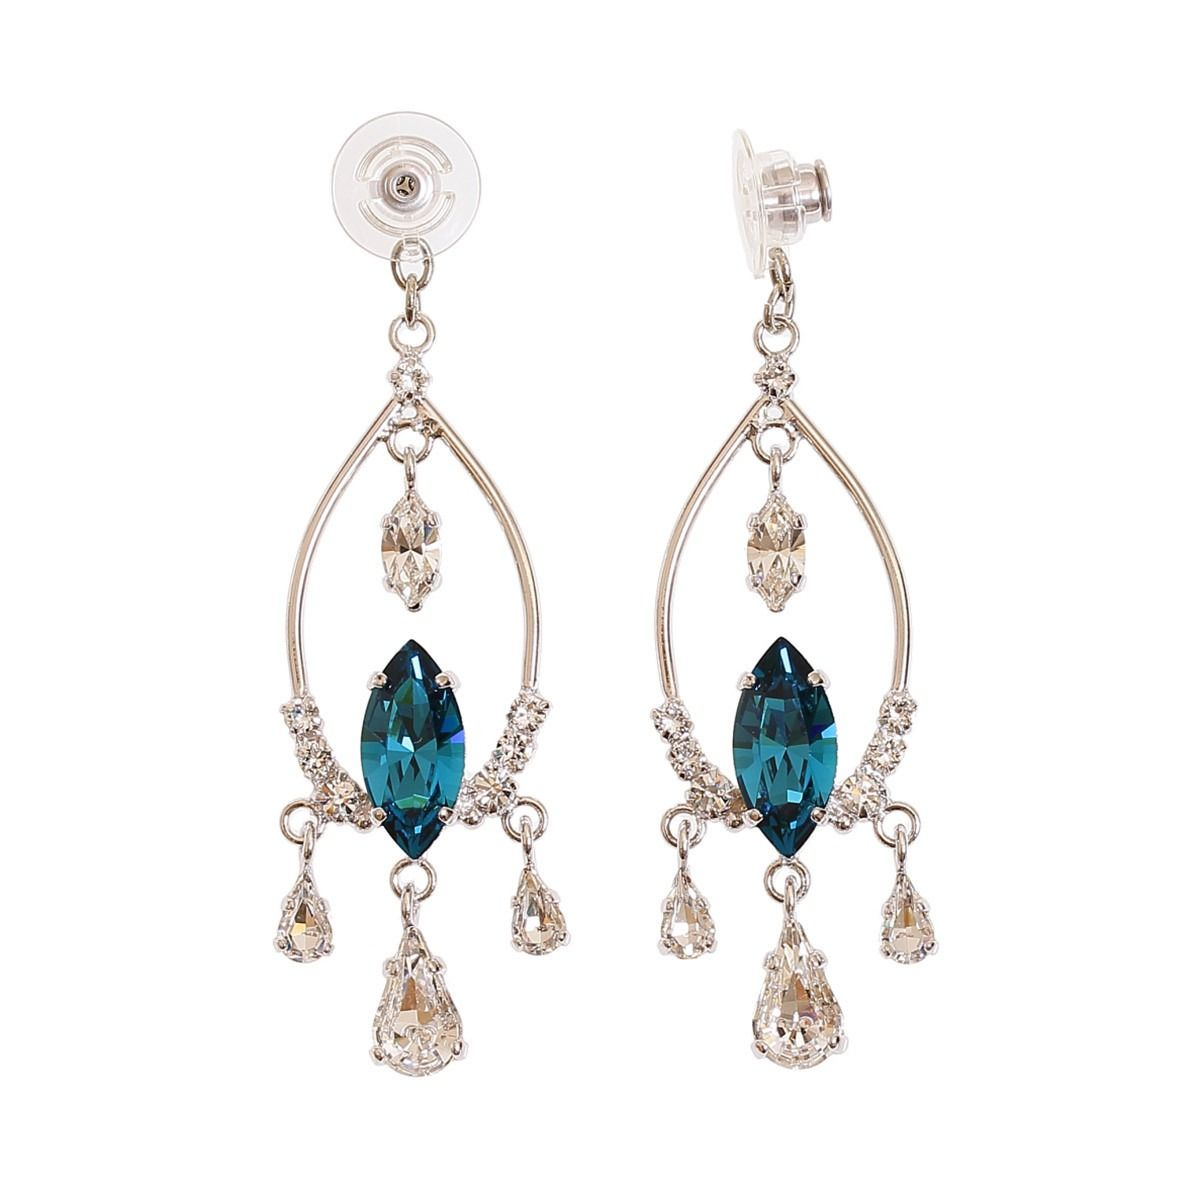 Statement chandelier earring jacket set with Swarovski crystals in aqua  blue and diamond colours. Handmade 950eef12a3